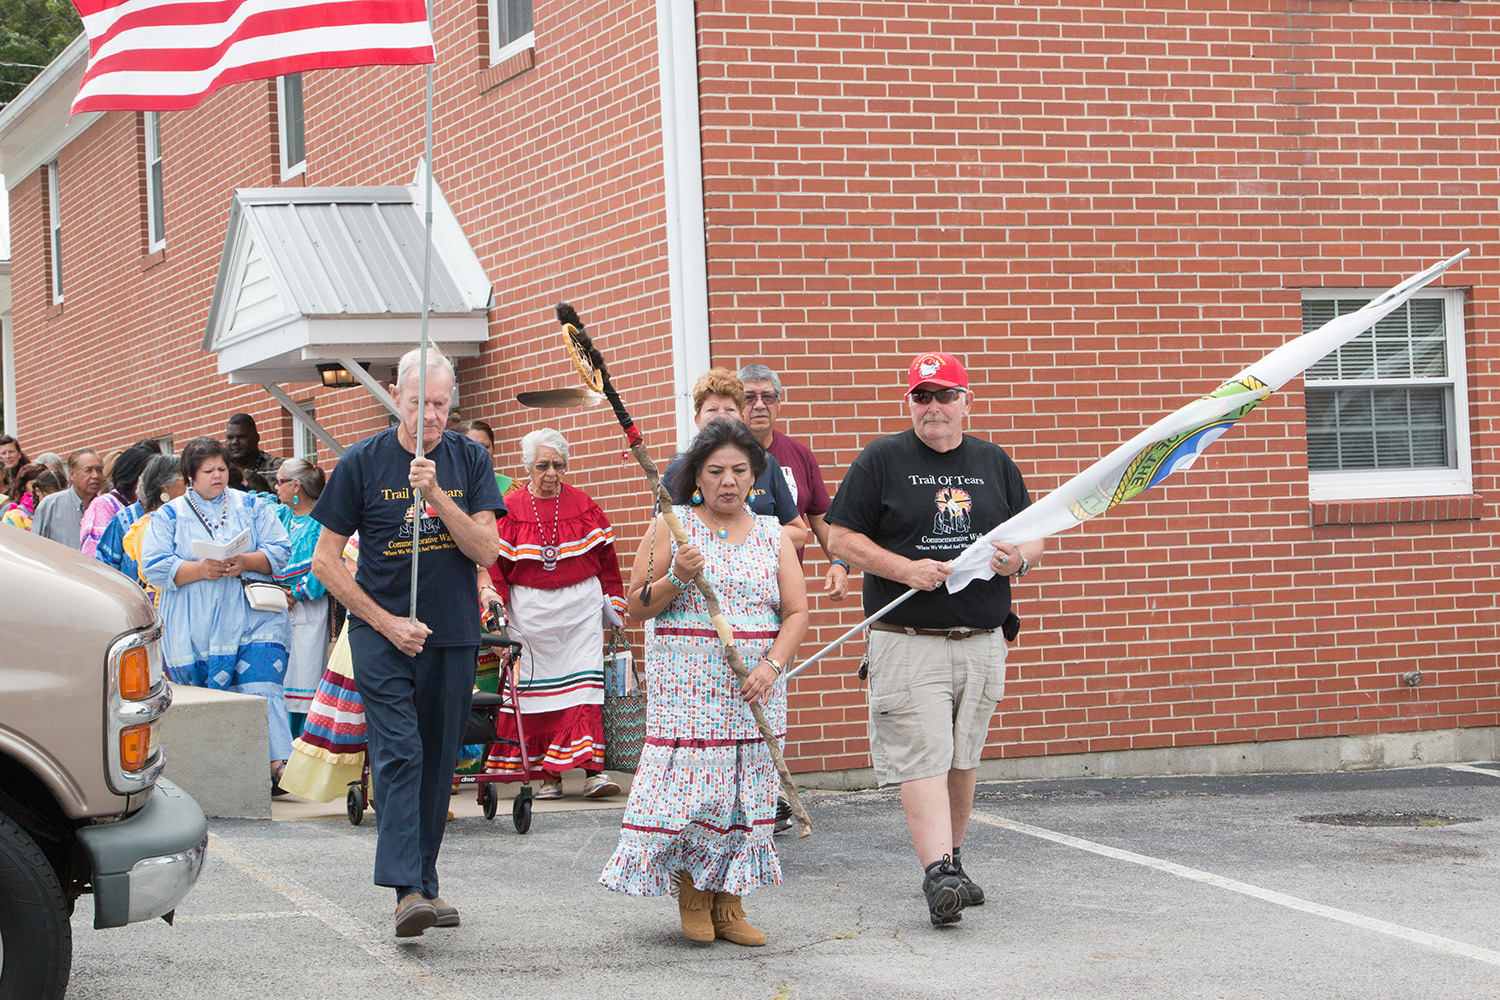 Muscogee (Creek) citizens host Trail of Tears Commemoration